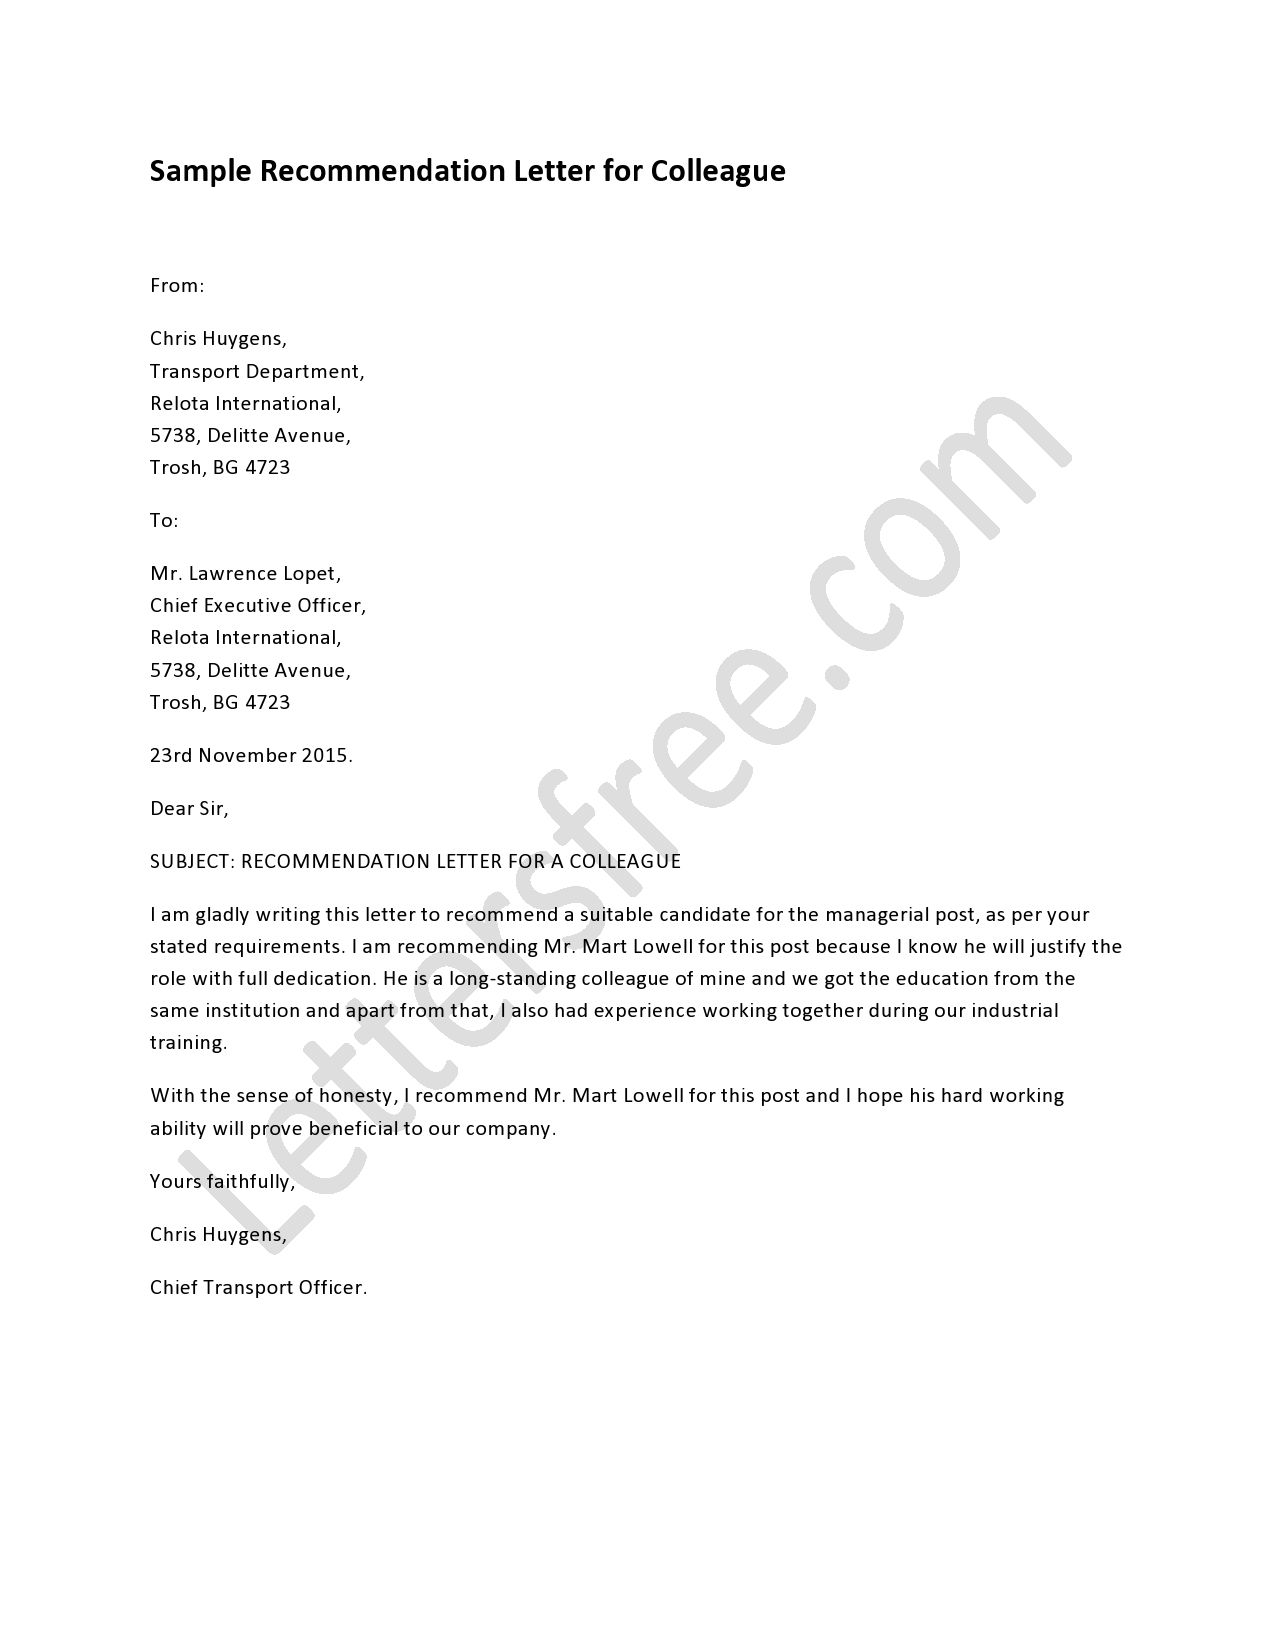 Example Of Recommendation Letter For Colleague  Sample